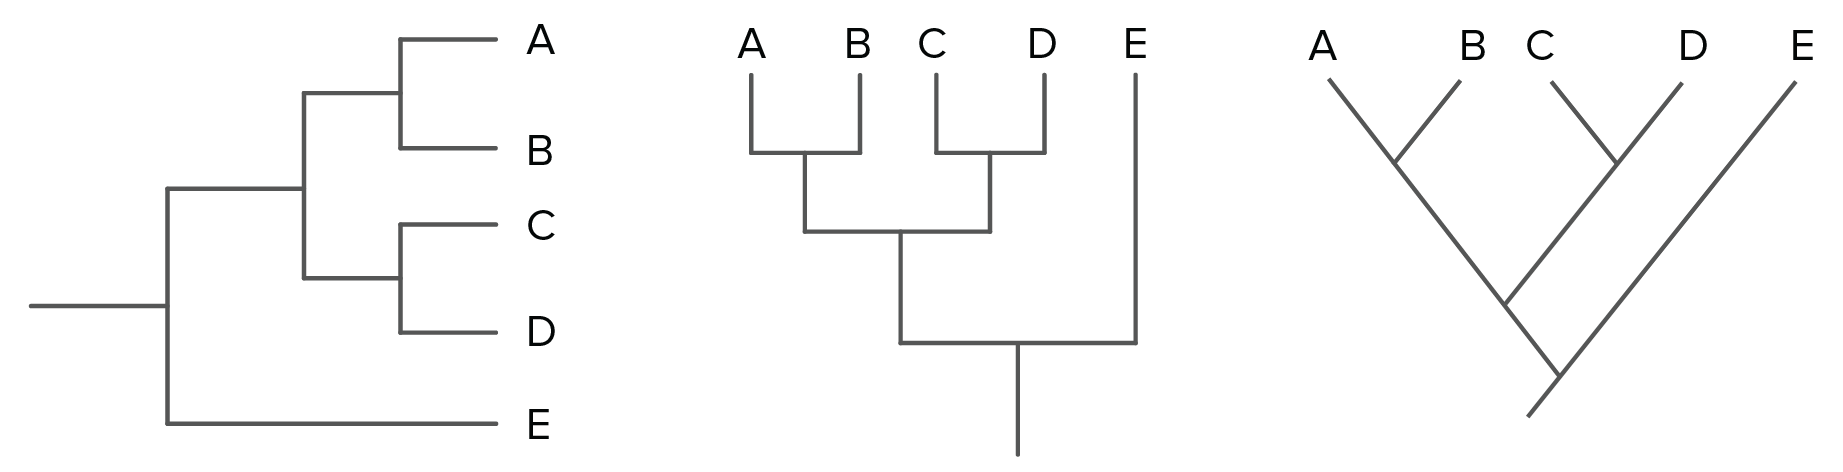 Phylogenetic Trees Evolutionary Tree Article Khan Academy Will Someone Kindly Find A Problem With My Diagramthanx Rob Image Modified From Taxonomy And Phylogeny Figure 2 By Robert Bear Et Al Cc 40